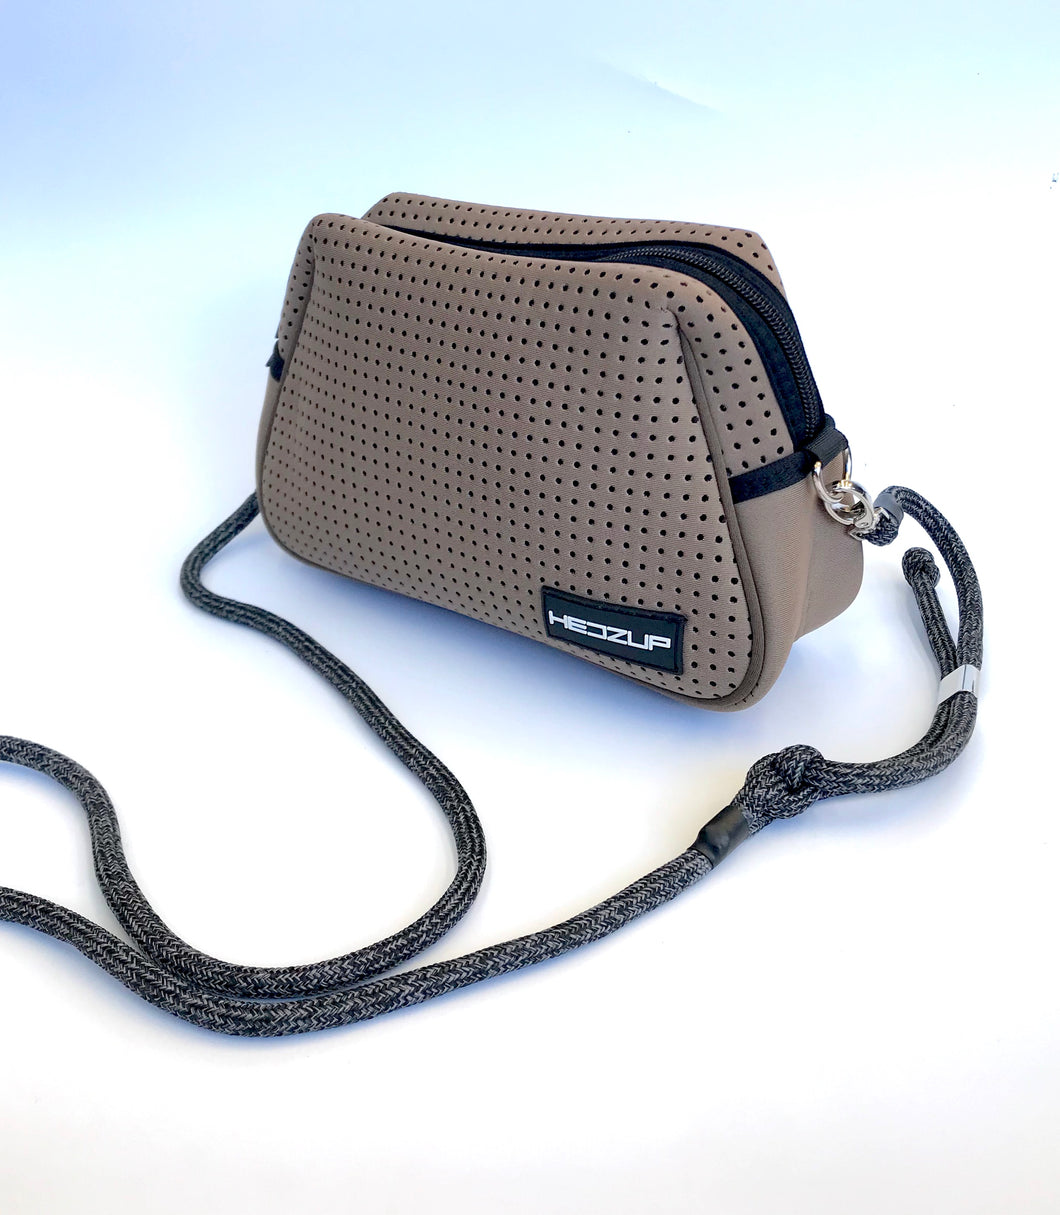 Neoprene Khaki Brown Shoulder Bag